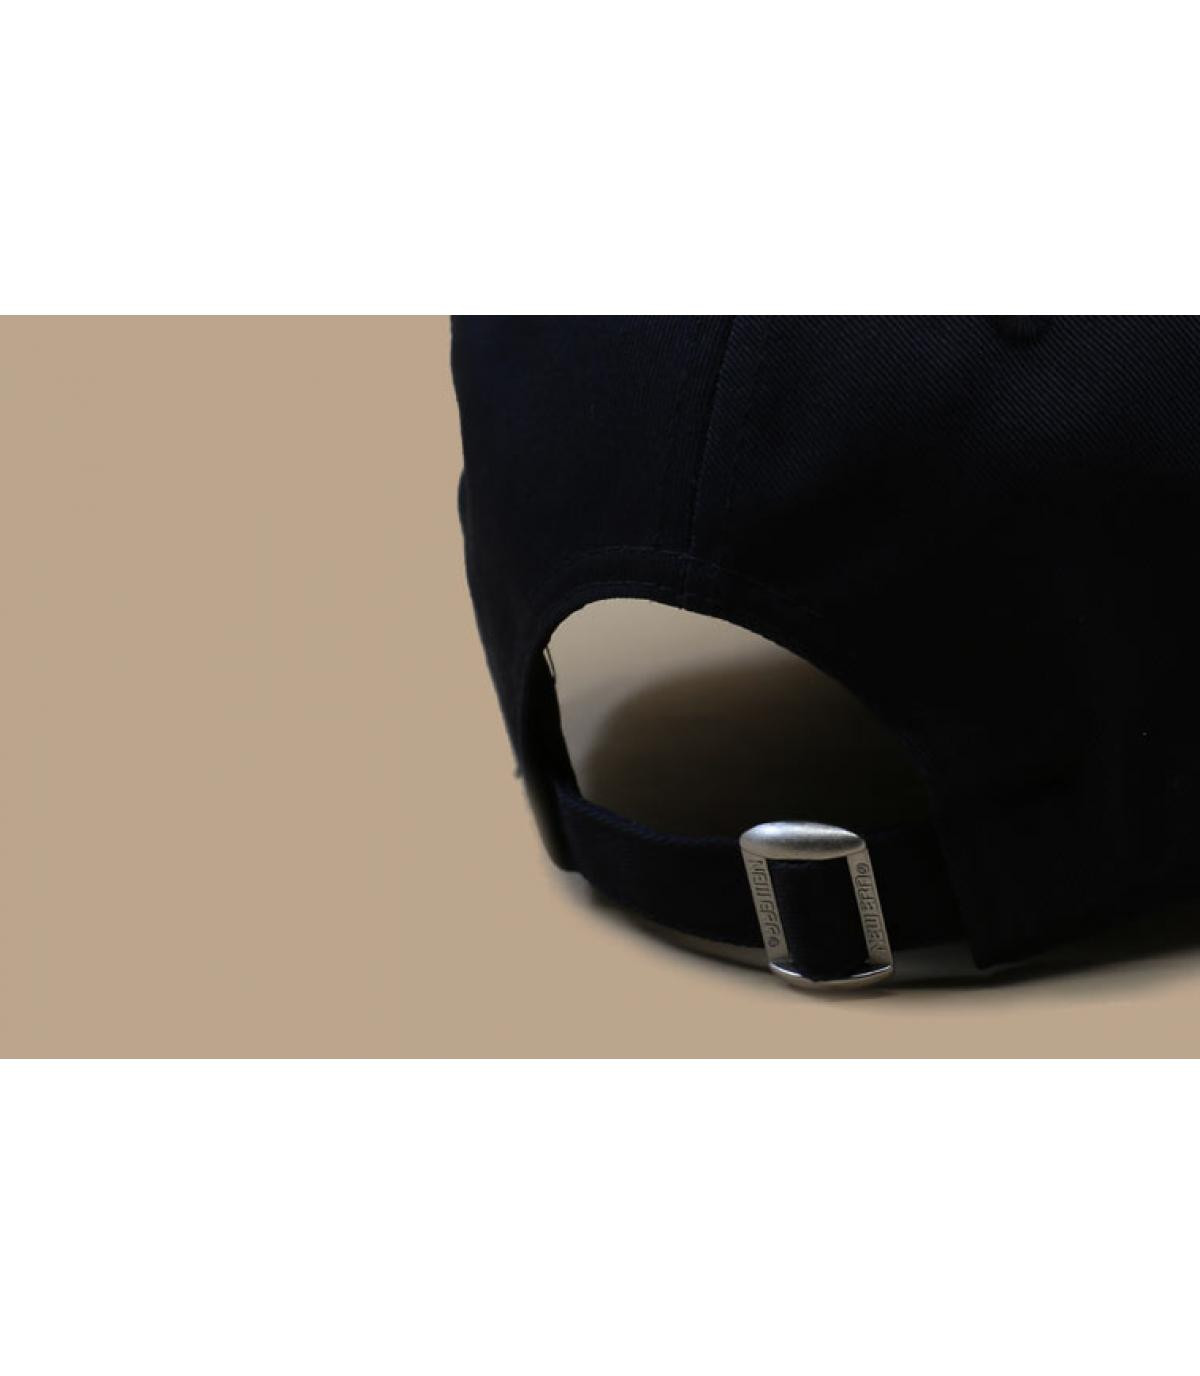 Détails Casquette Infill 940 NY navy - image 5